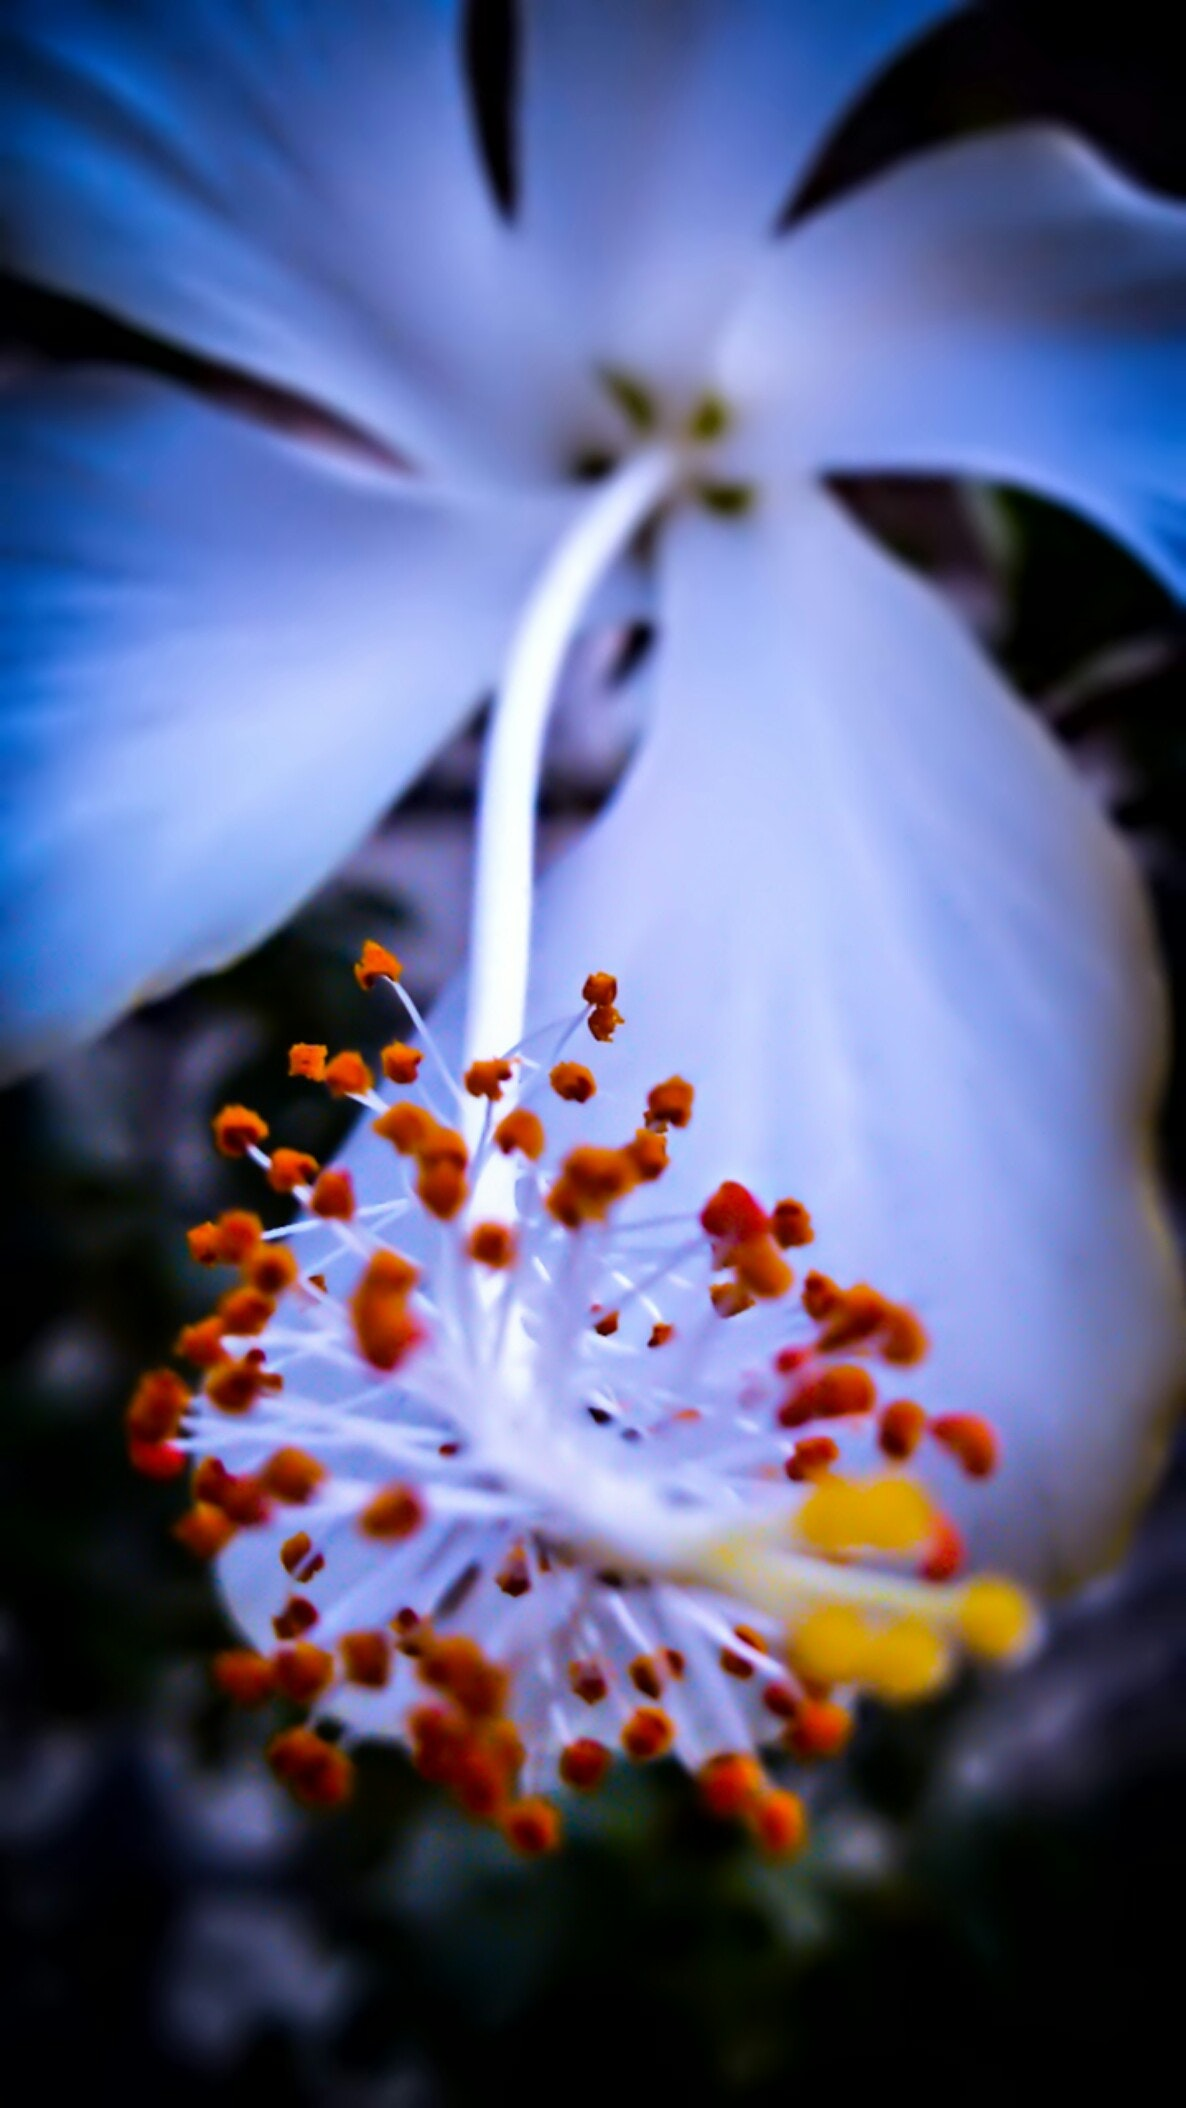 White Hibiscus Flower in Macro Shot Photography, Beautiful, Flower, Outdoors, Nature, HQ Photo